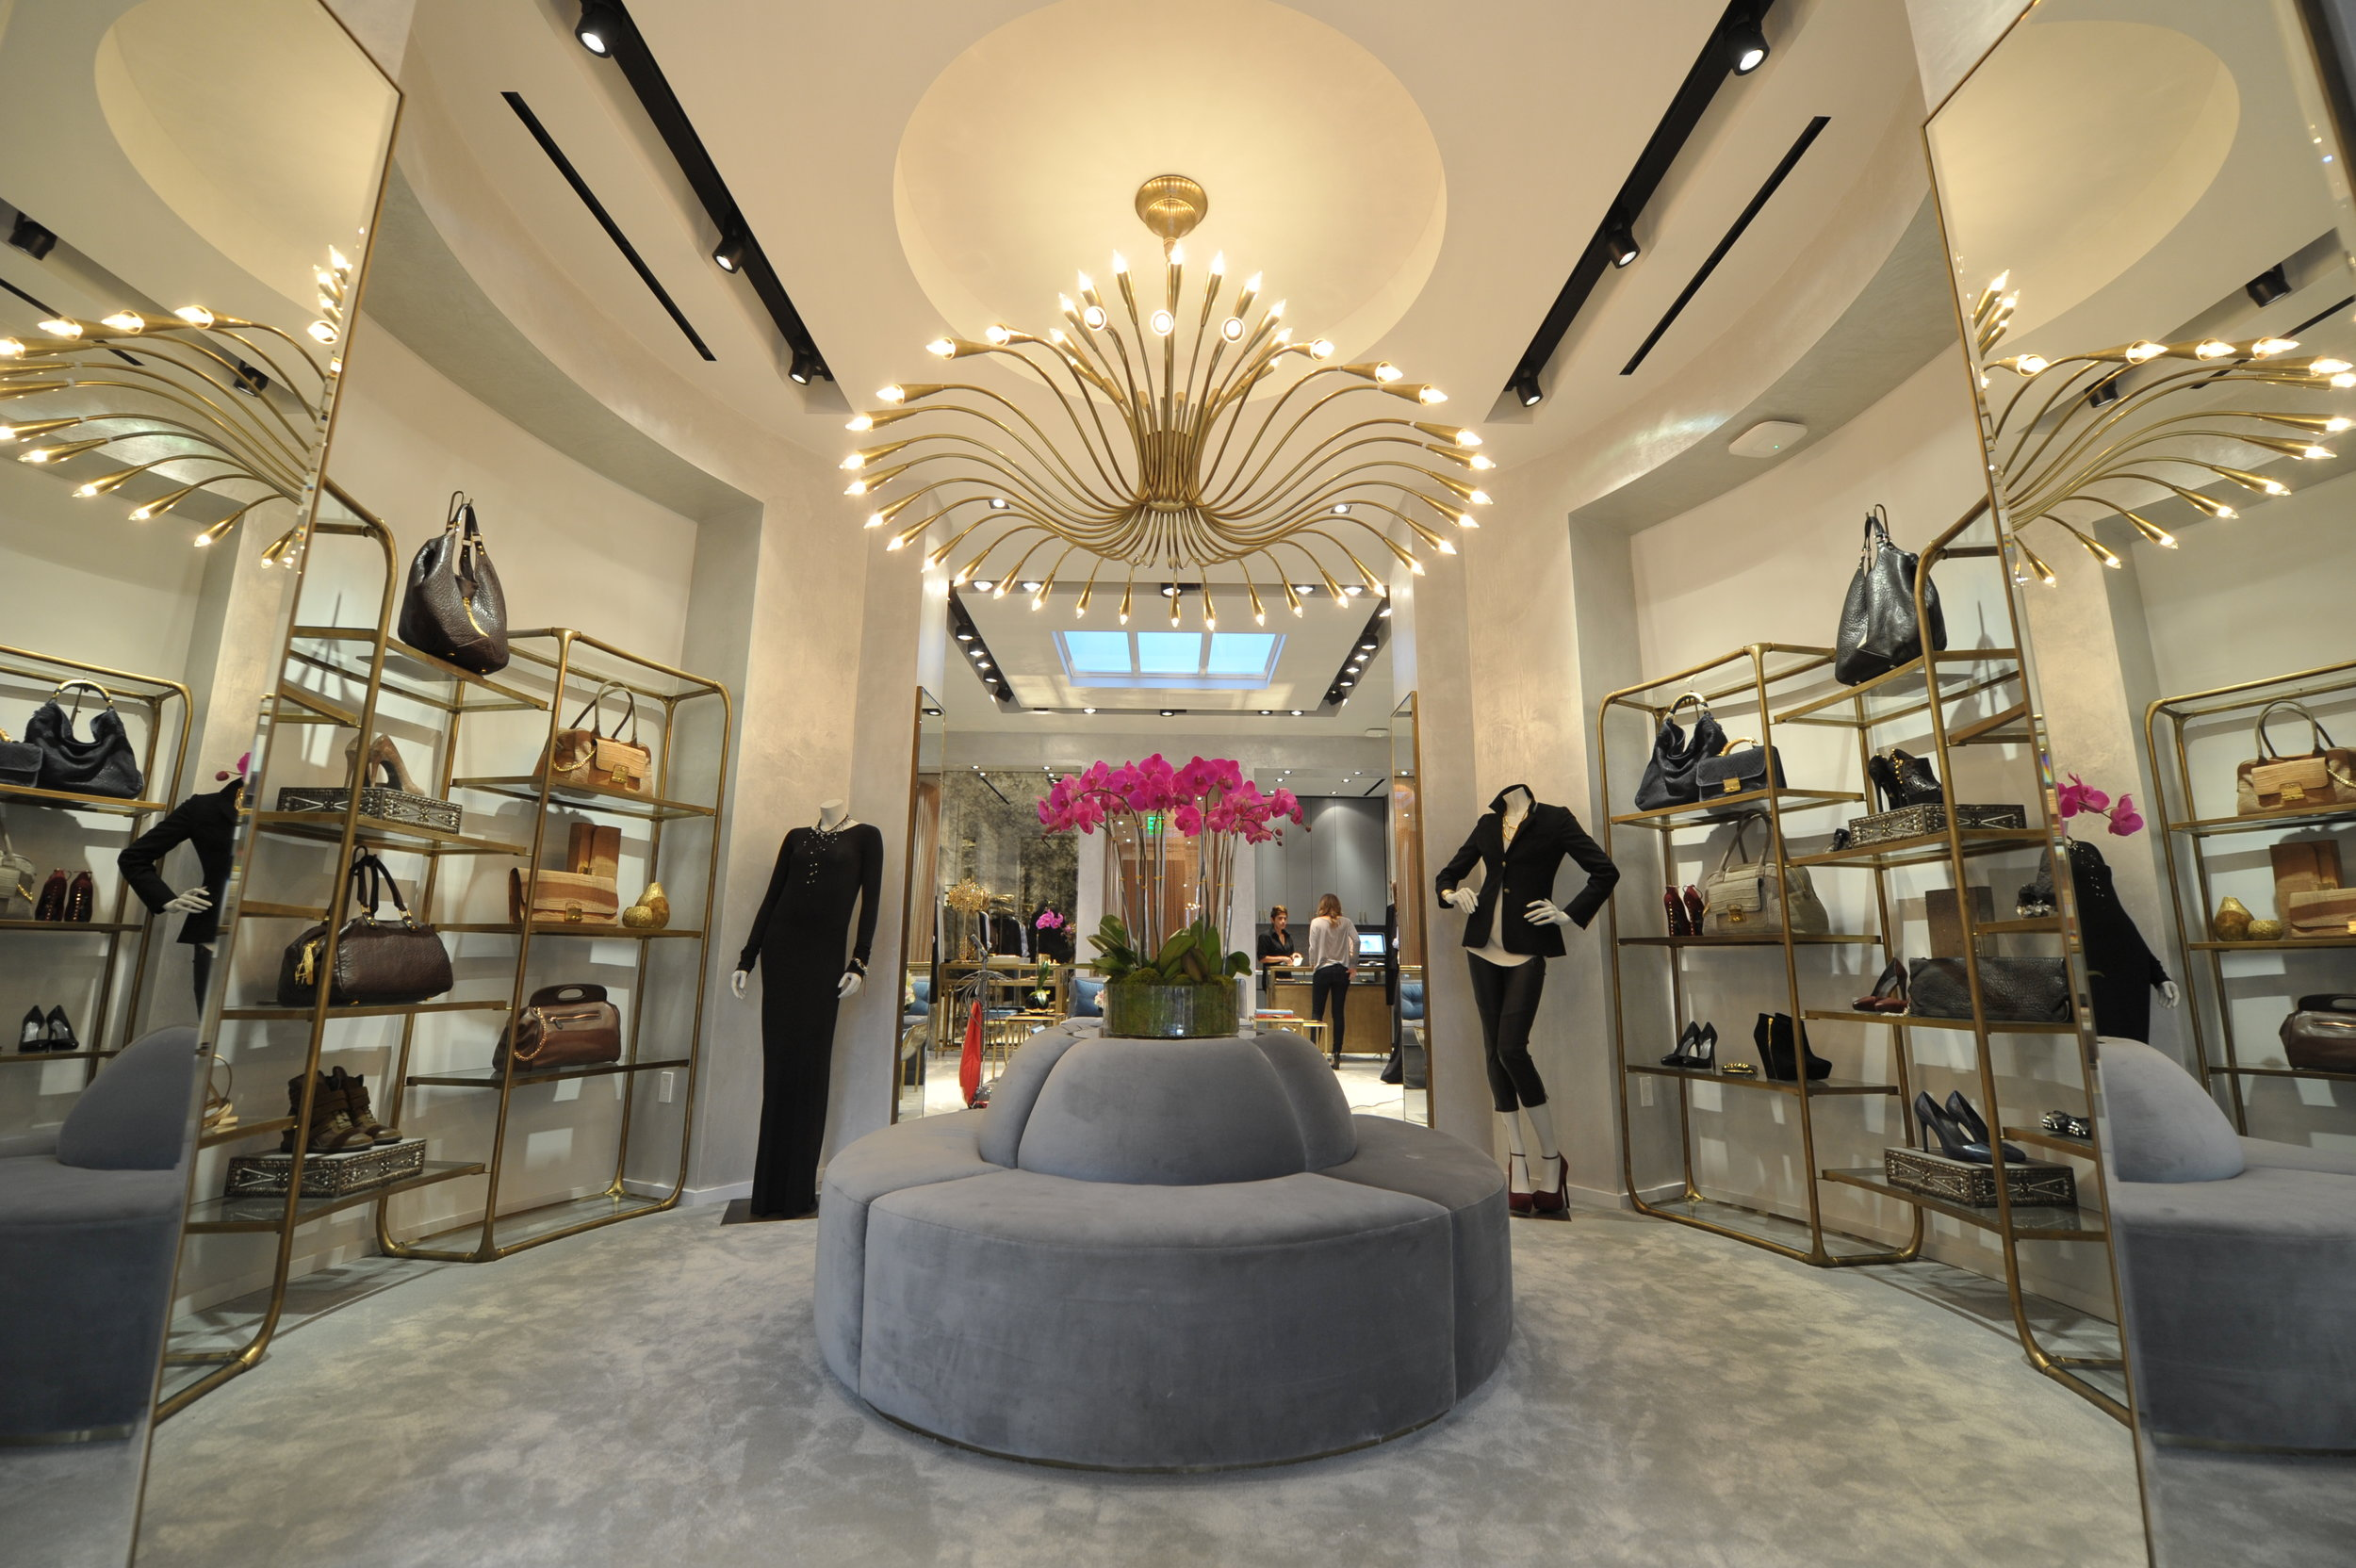 Large wiry chandelier over a grey circular couch and grey carpet surrounded by display shelves featuring handbags and shoes by Monika Chiang. MEP designed by 2L Engineering.